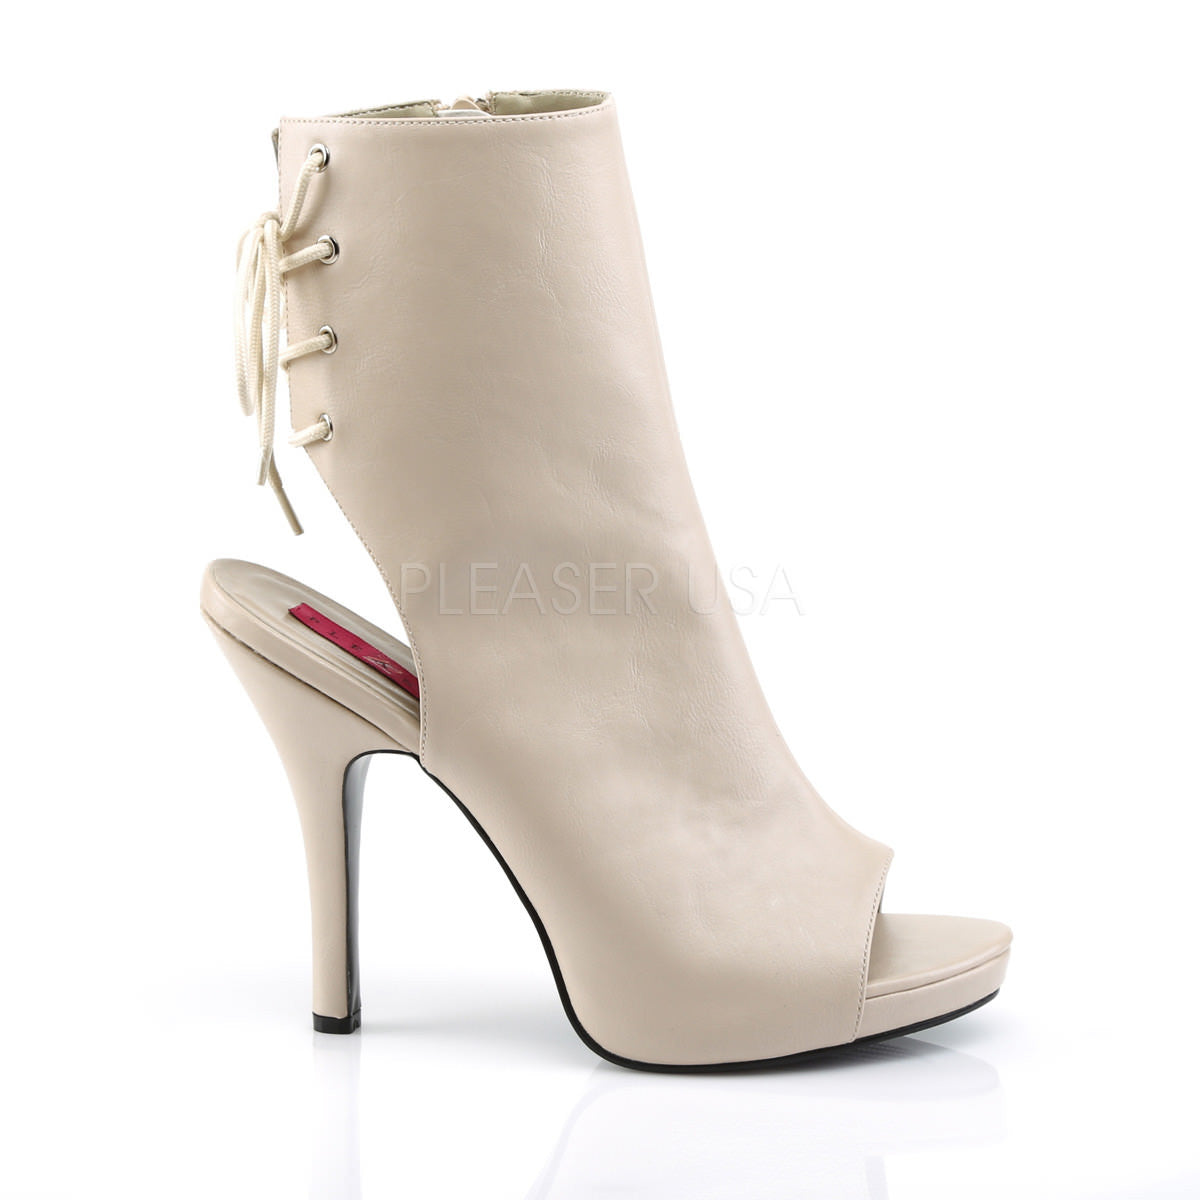 3ddc443af80f4 Pleaser Pink Label EVE-102 Cream Faux Leather Ankle Boots. Previous